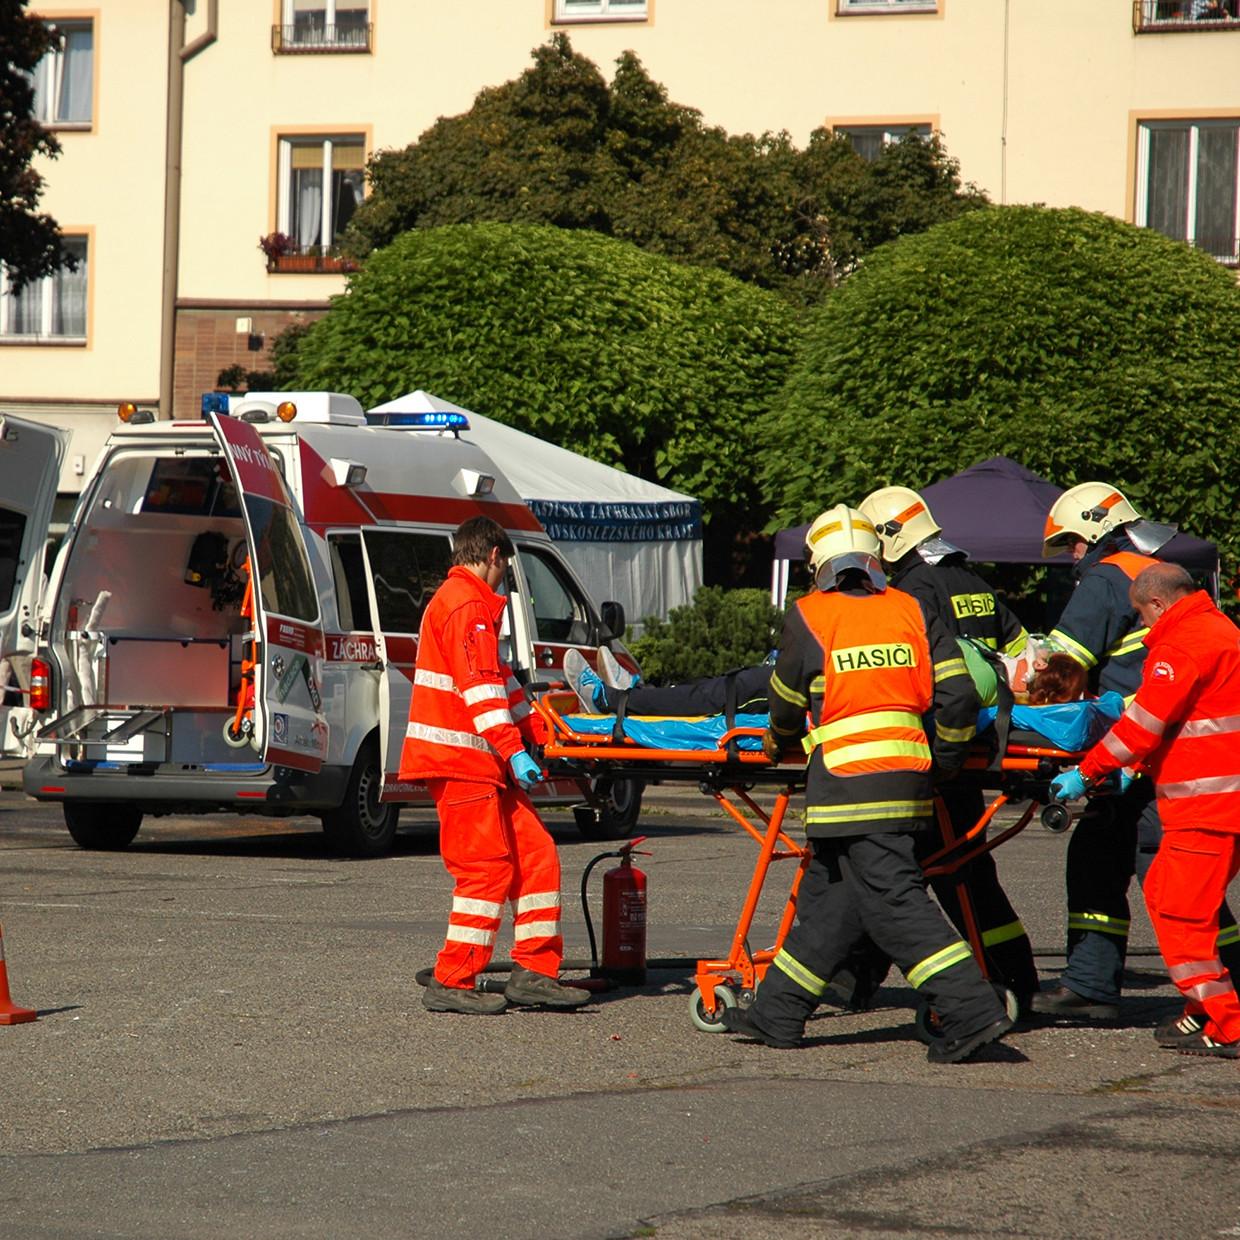 Paramedics and firefighters assisting a victim